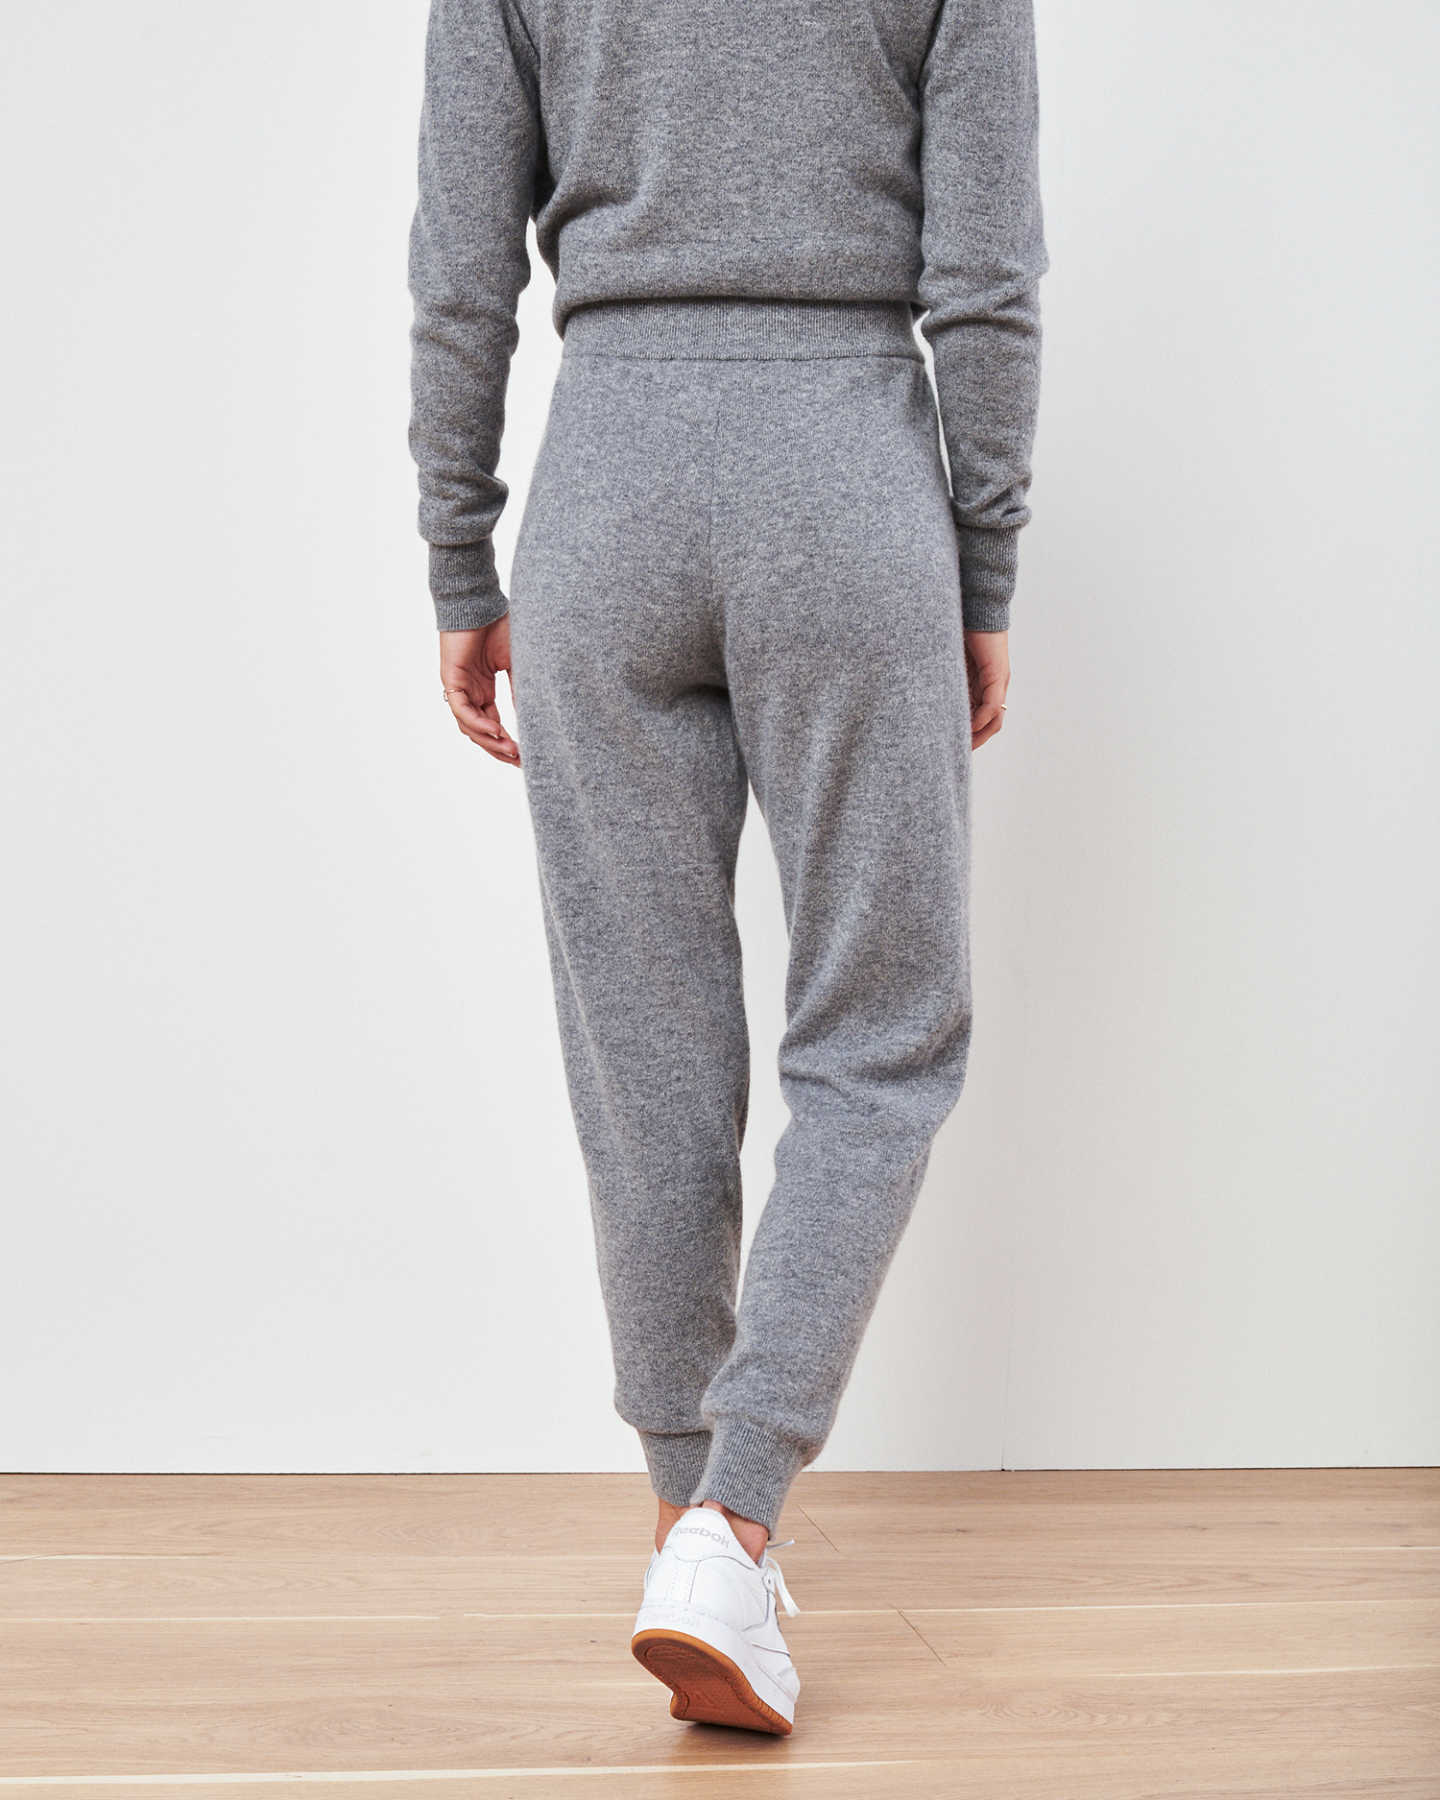 Woman wearing grey cashmere sweatpants & cashmere joggers from behind